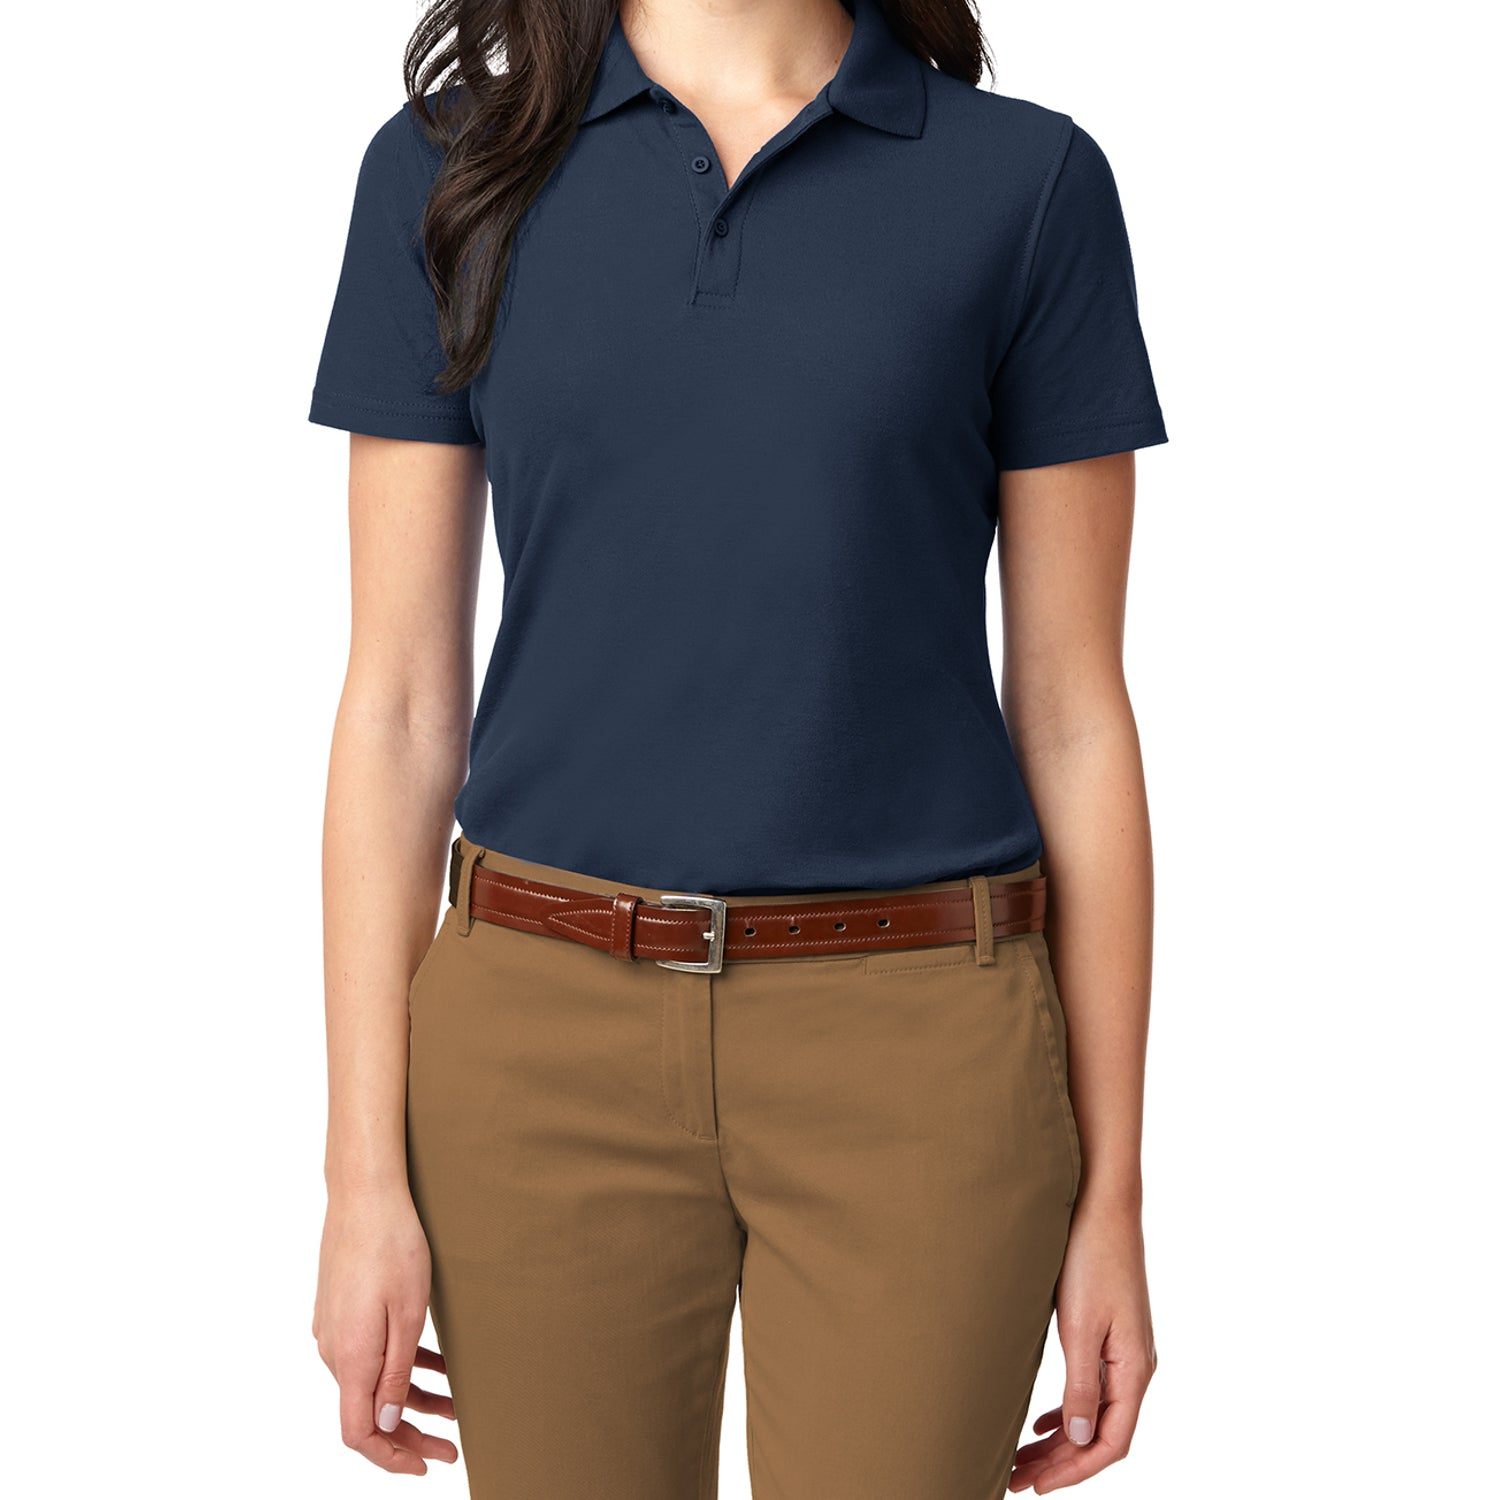 polo t shirt for ladies